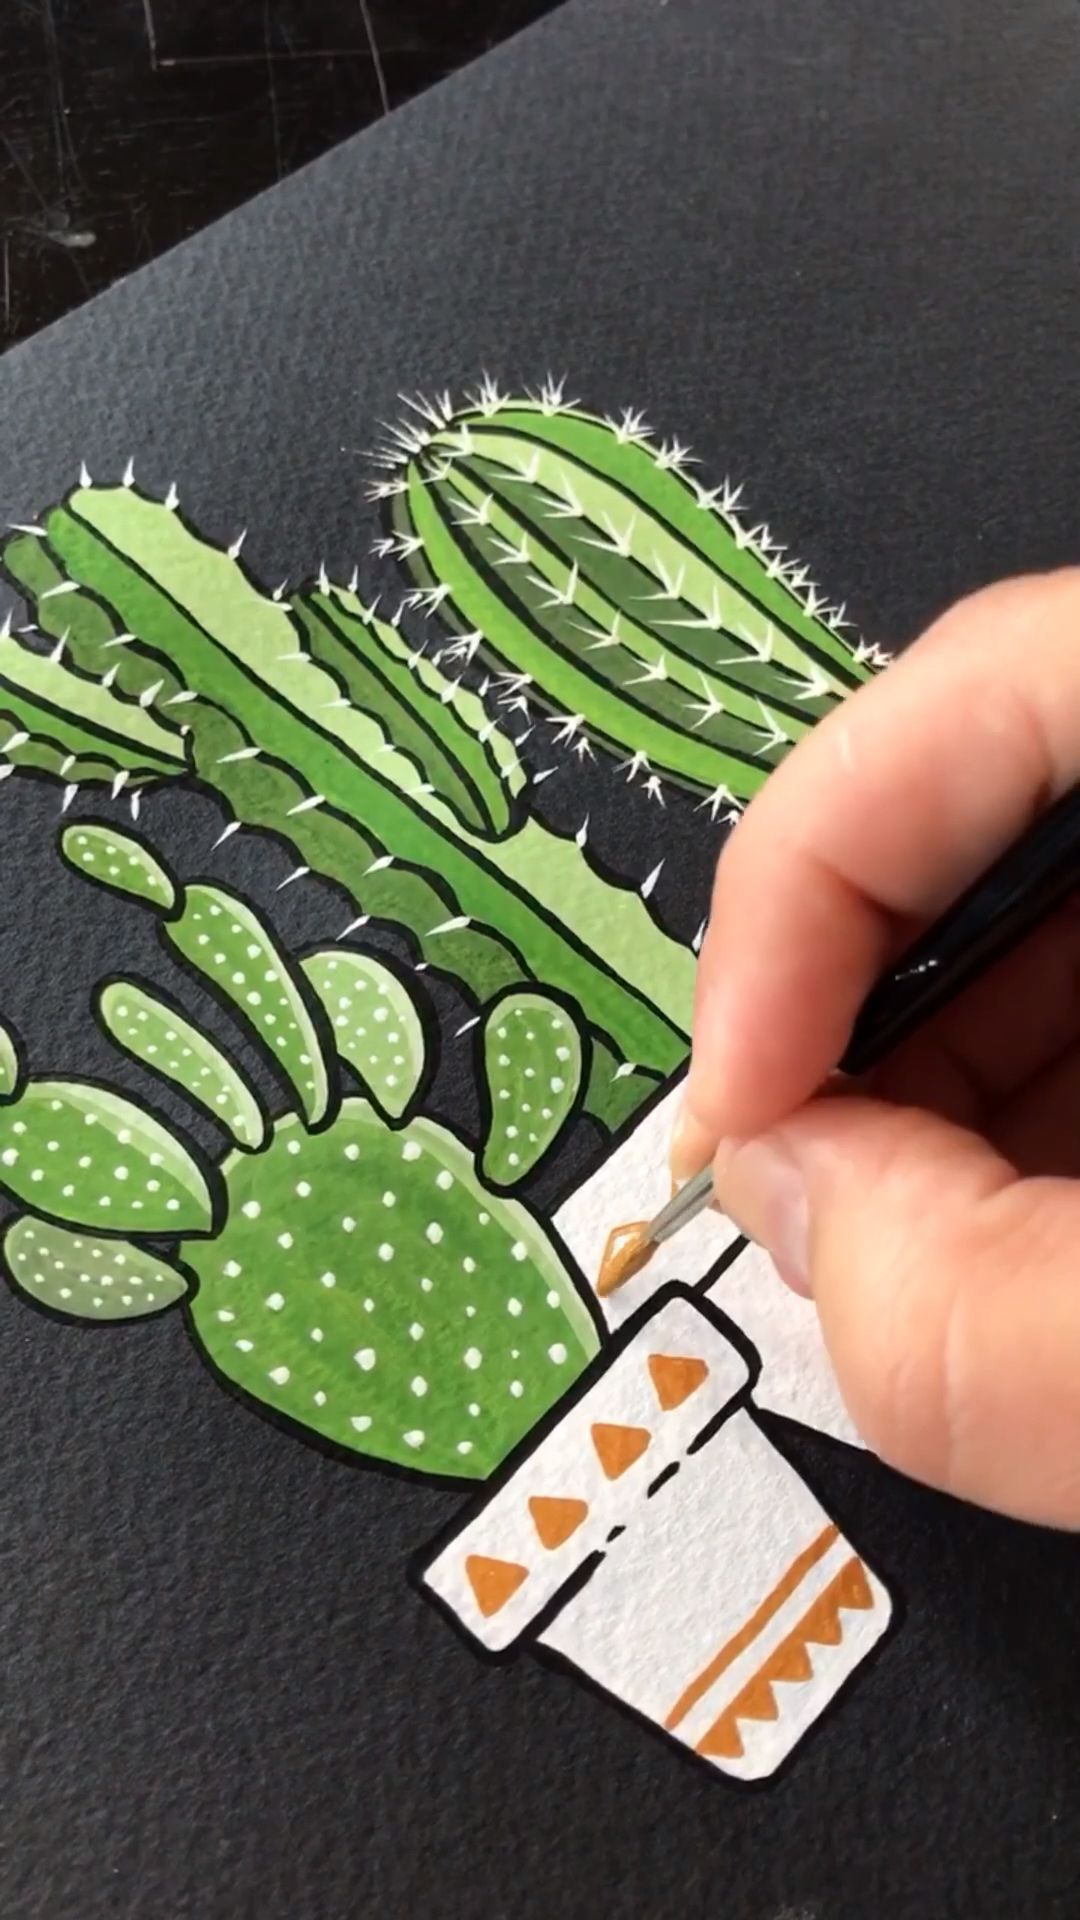 Gouache Painting Cacti on Black Paper by Philip Bo